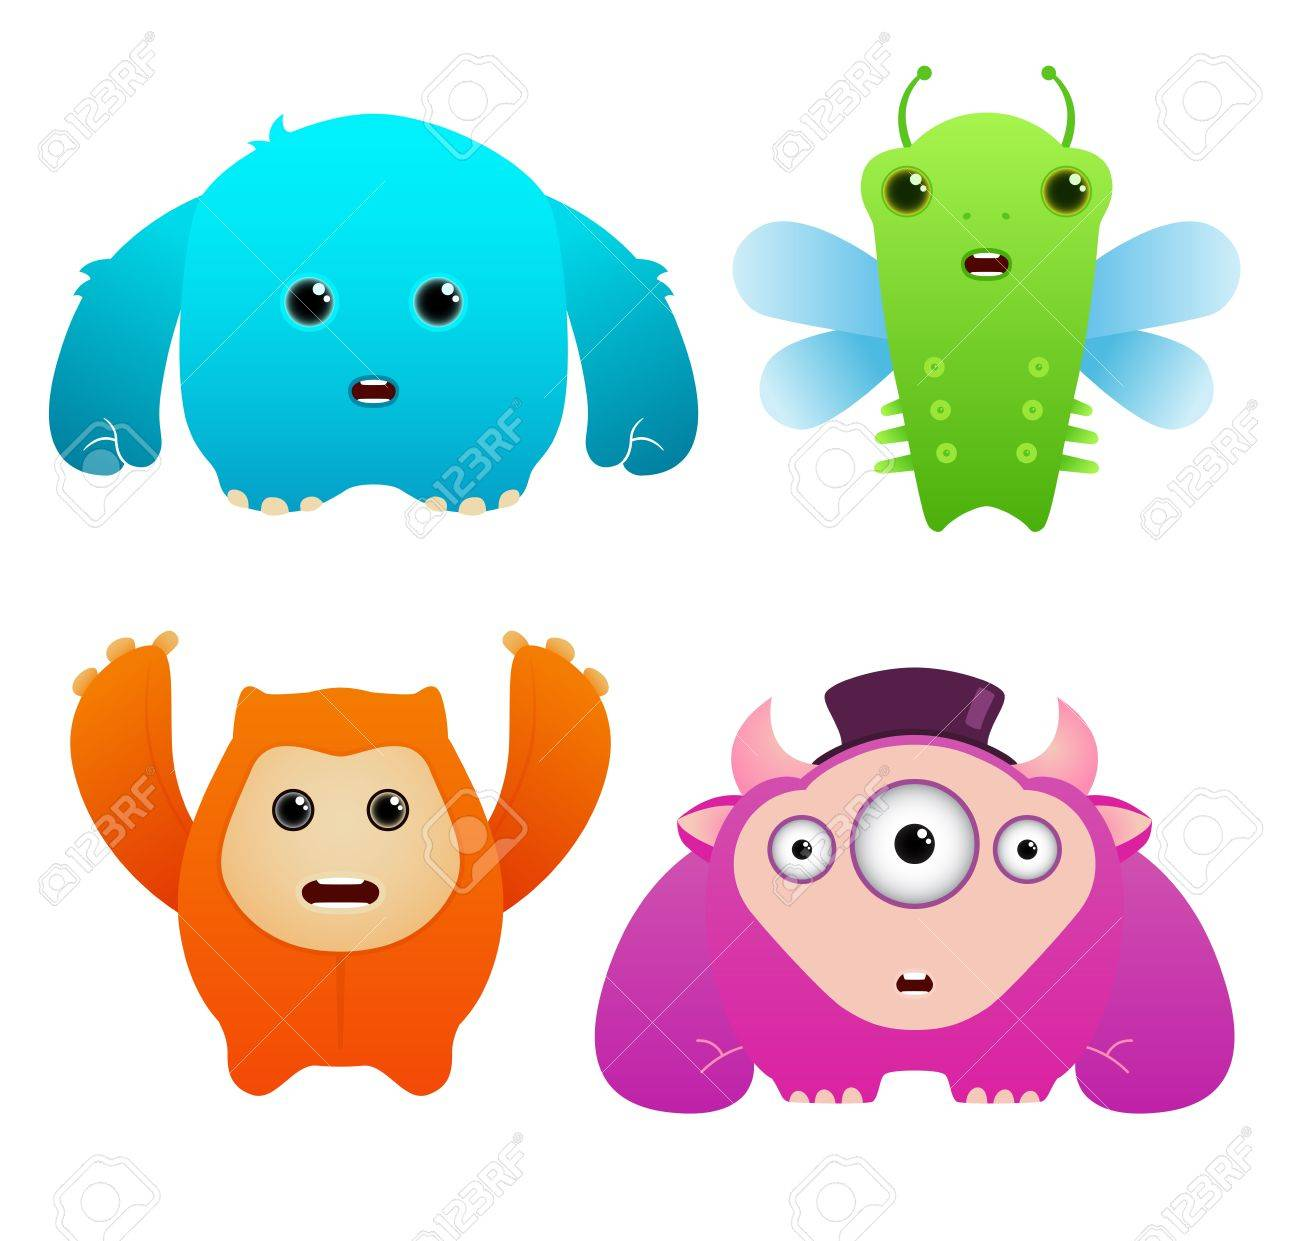 Set of Cute Vector Monsters Stock Vector - 9814643